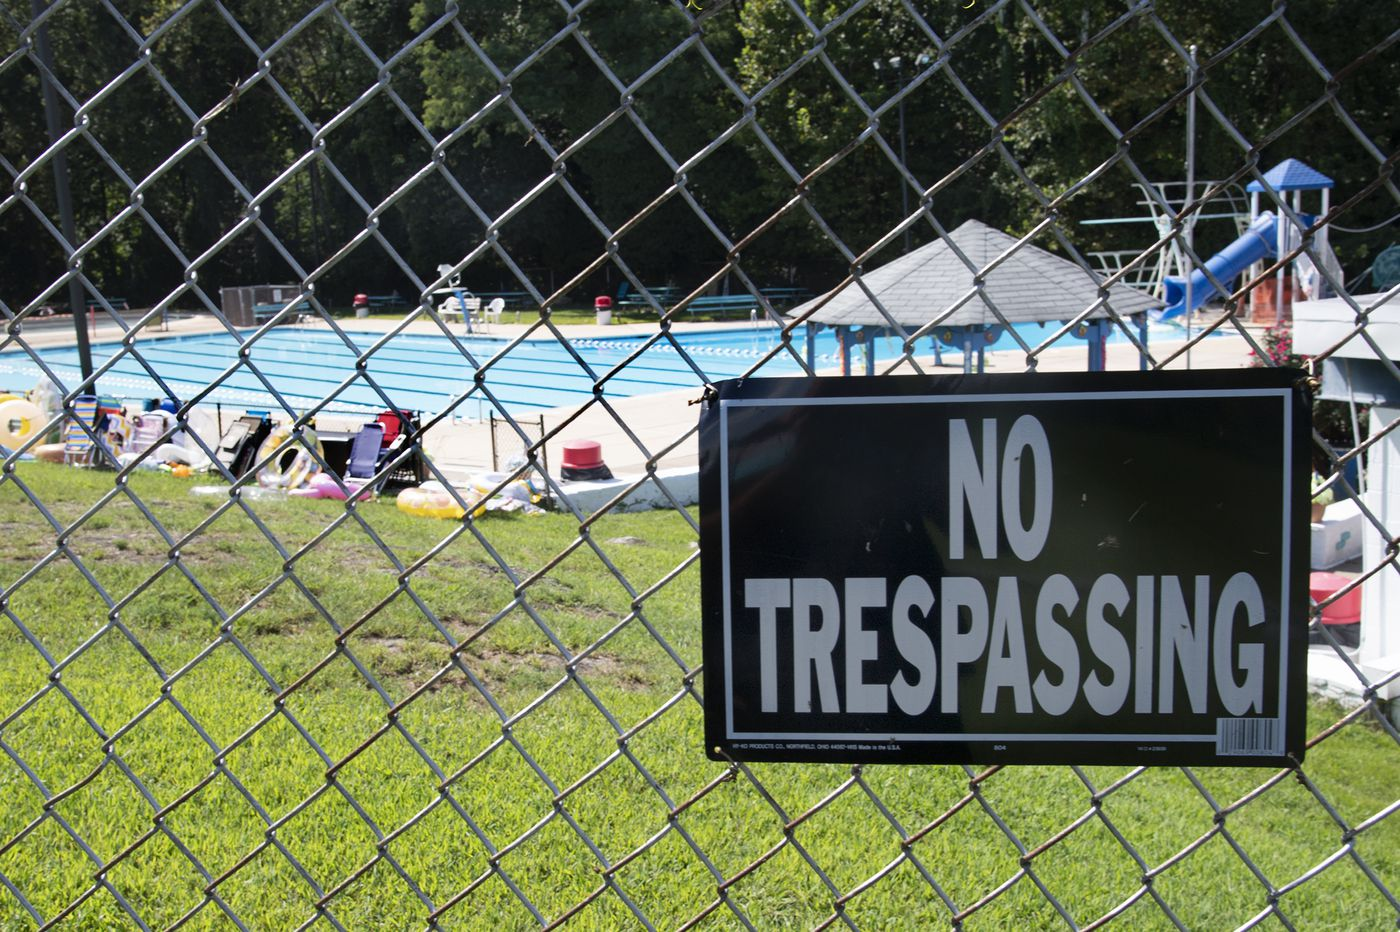 Boy dies after sneaking into Delaware County swimming pool overnight, police say